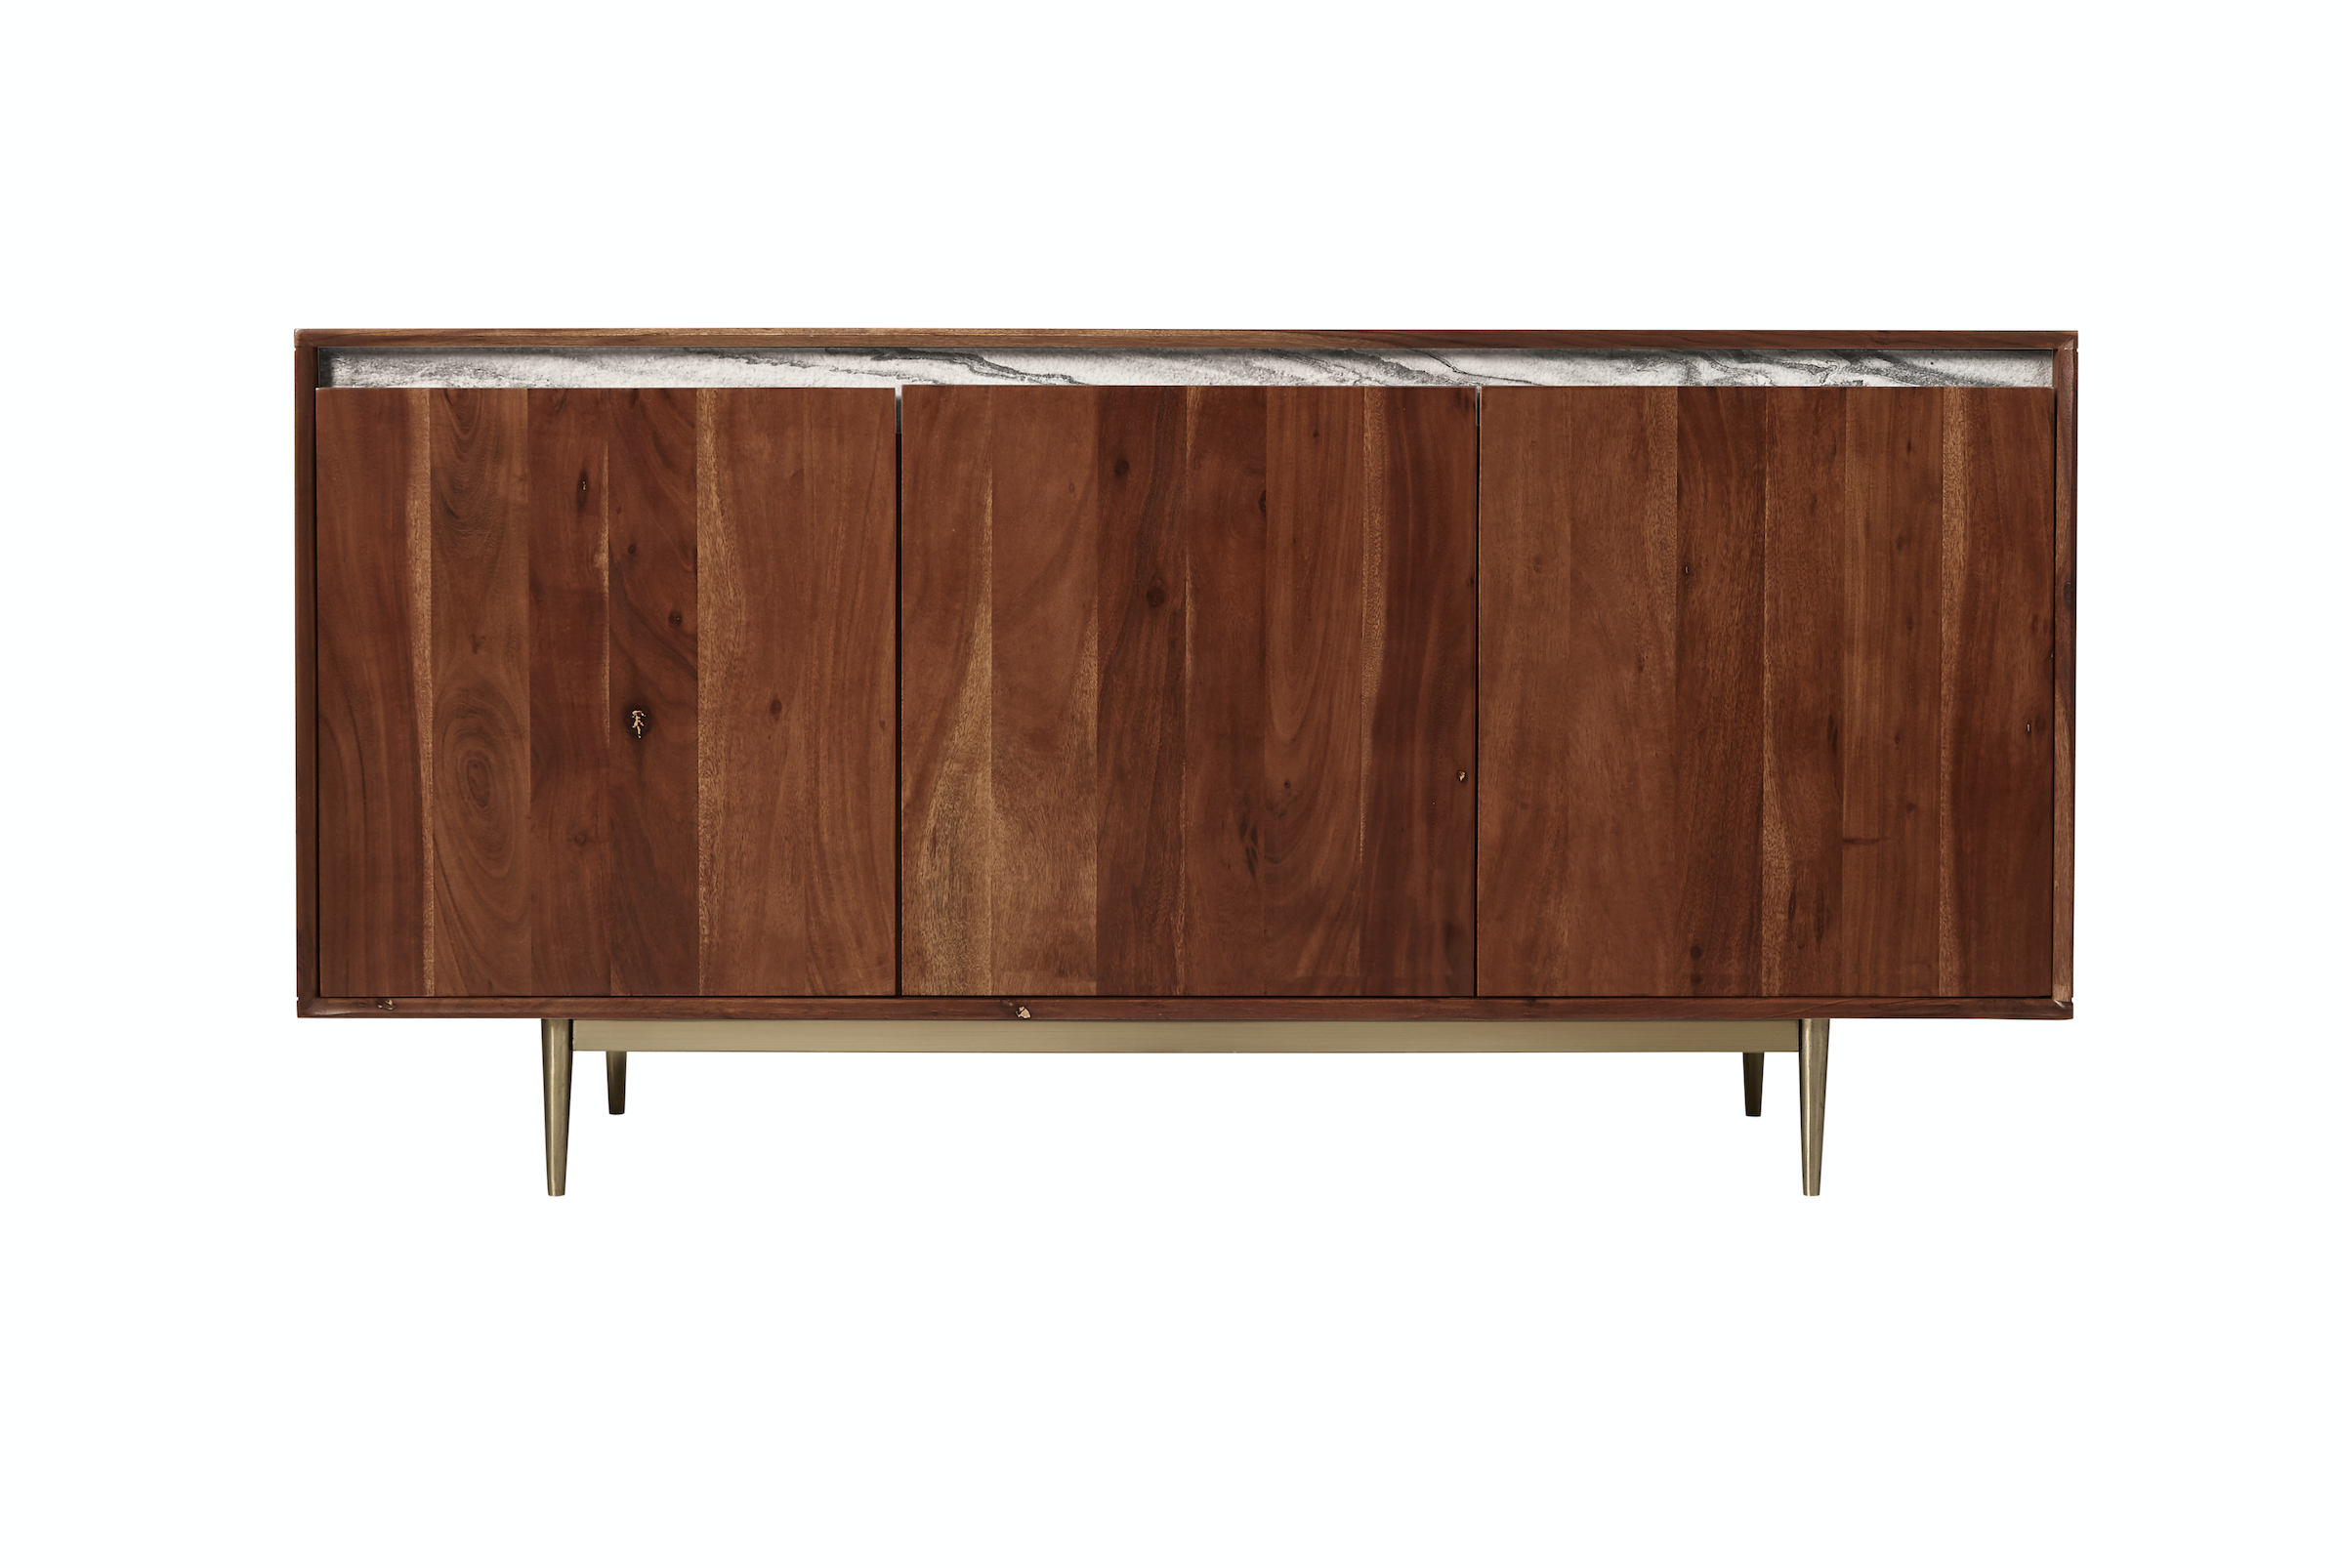 Acacia wood with steel legs, Fargo sideboard at Swoon Editions, £629